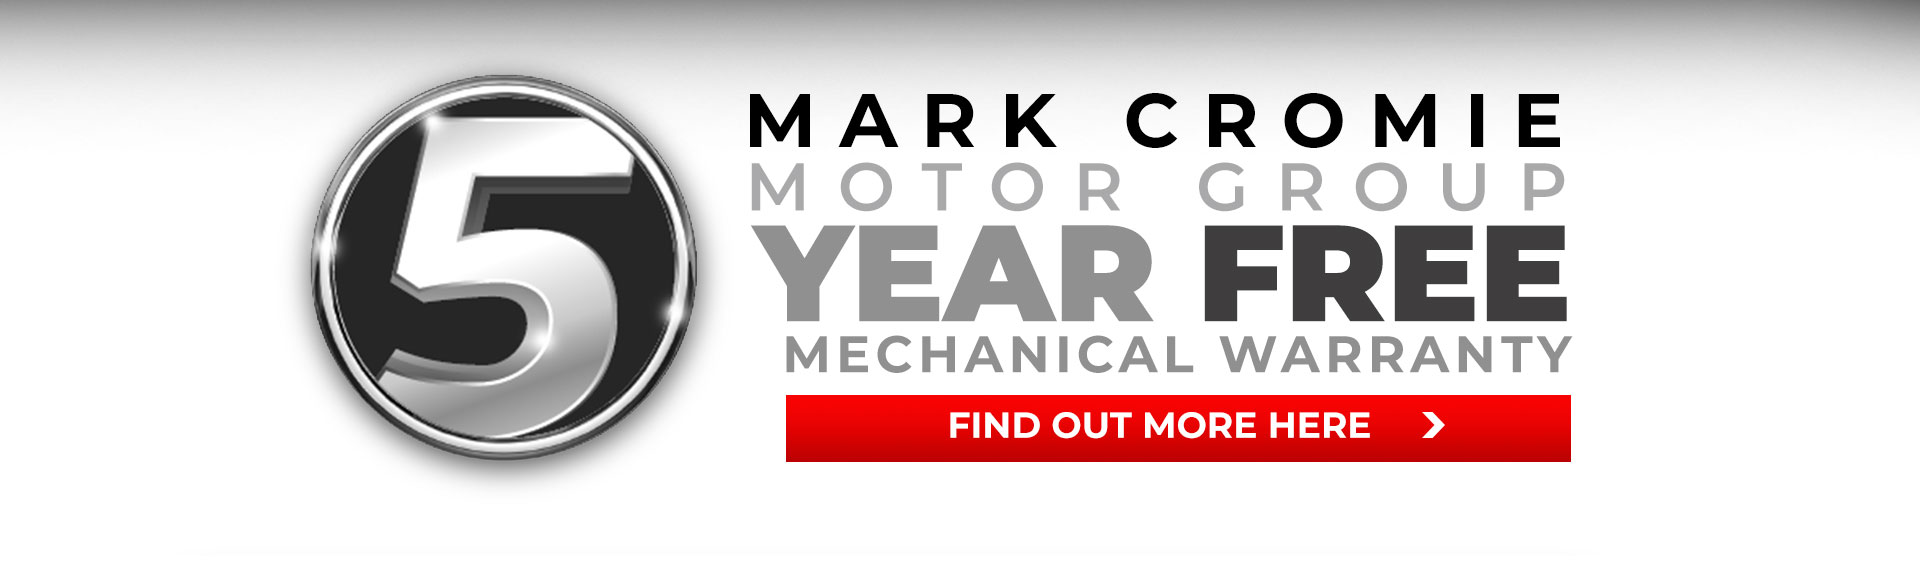 5 year free mechanical warranty